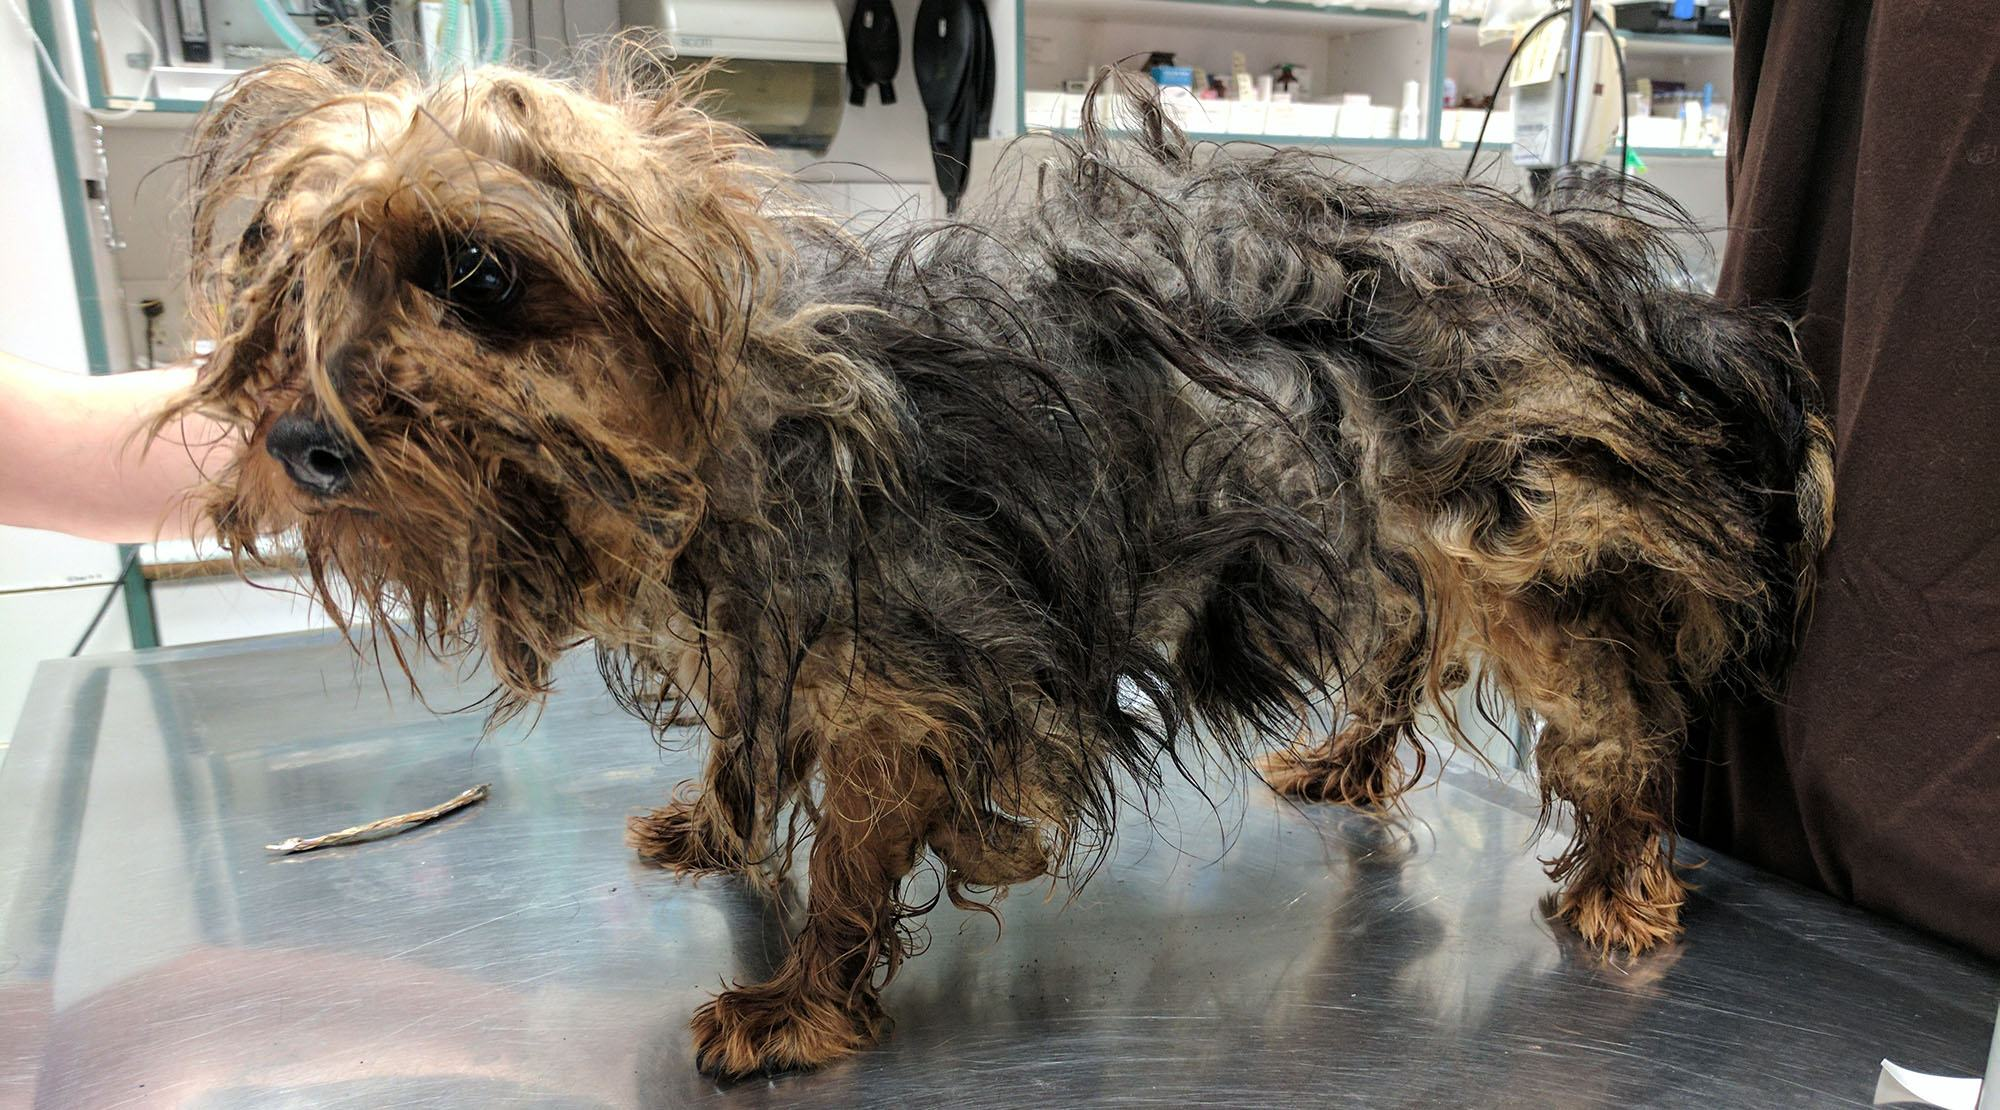 15 neglected Silky Terriers, 2 German Shepherds taken from BC dog breeder